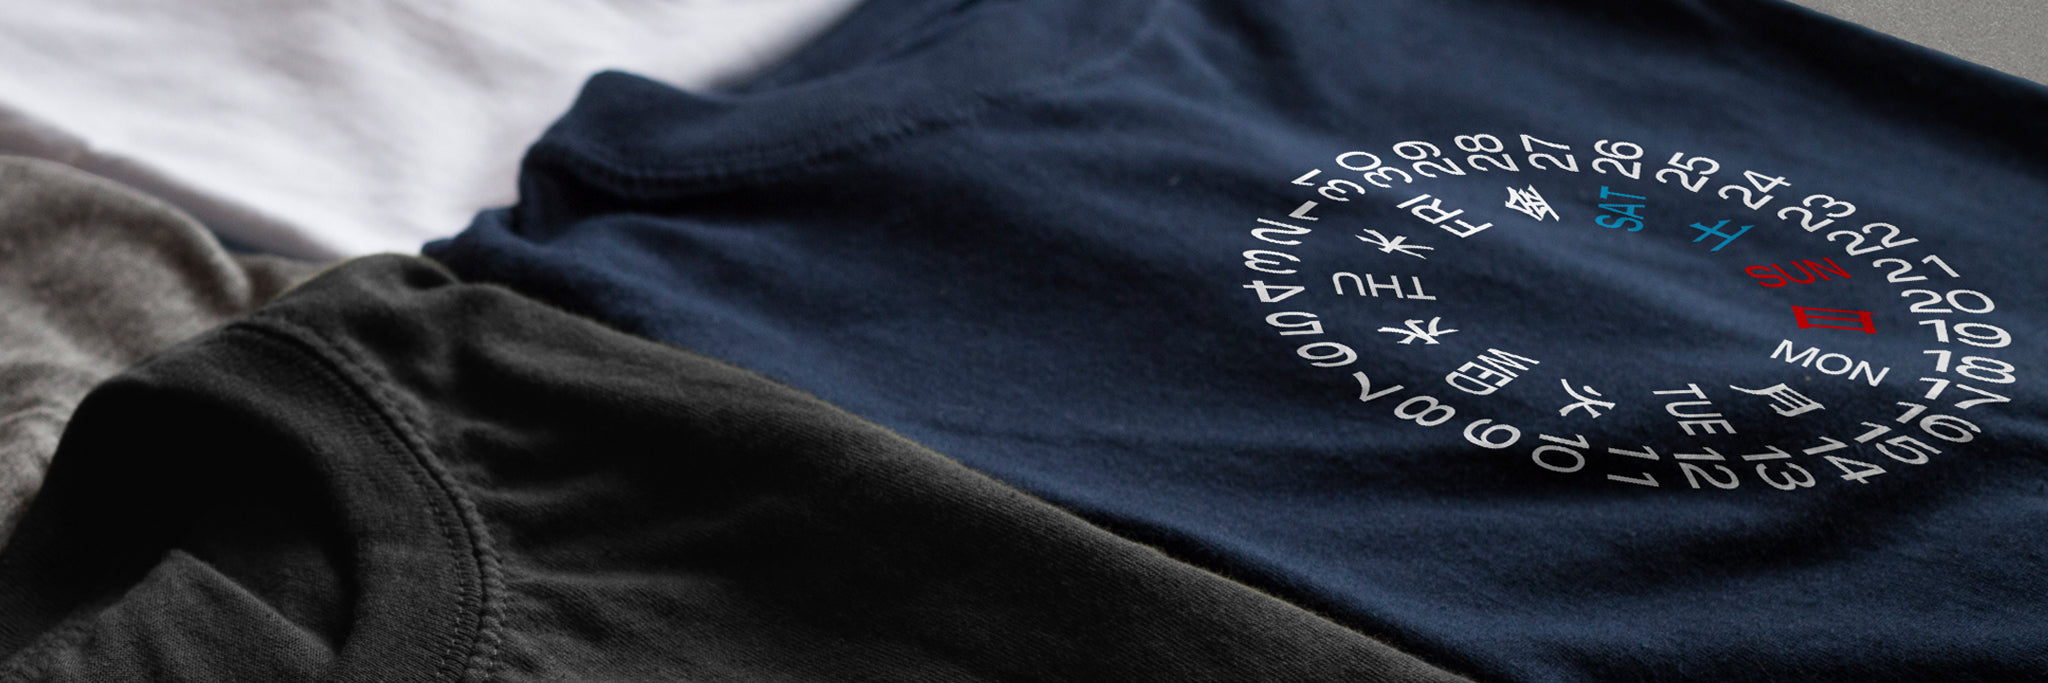 camiseta vario horology